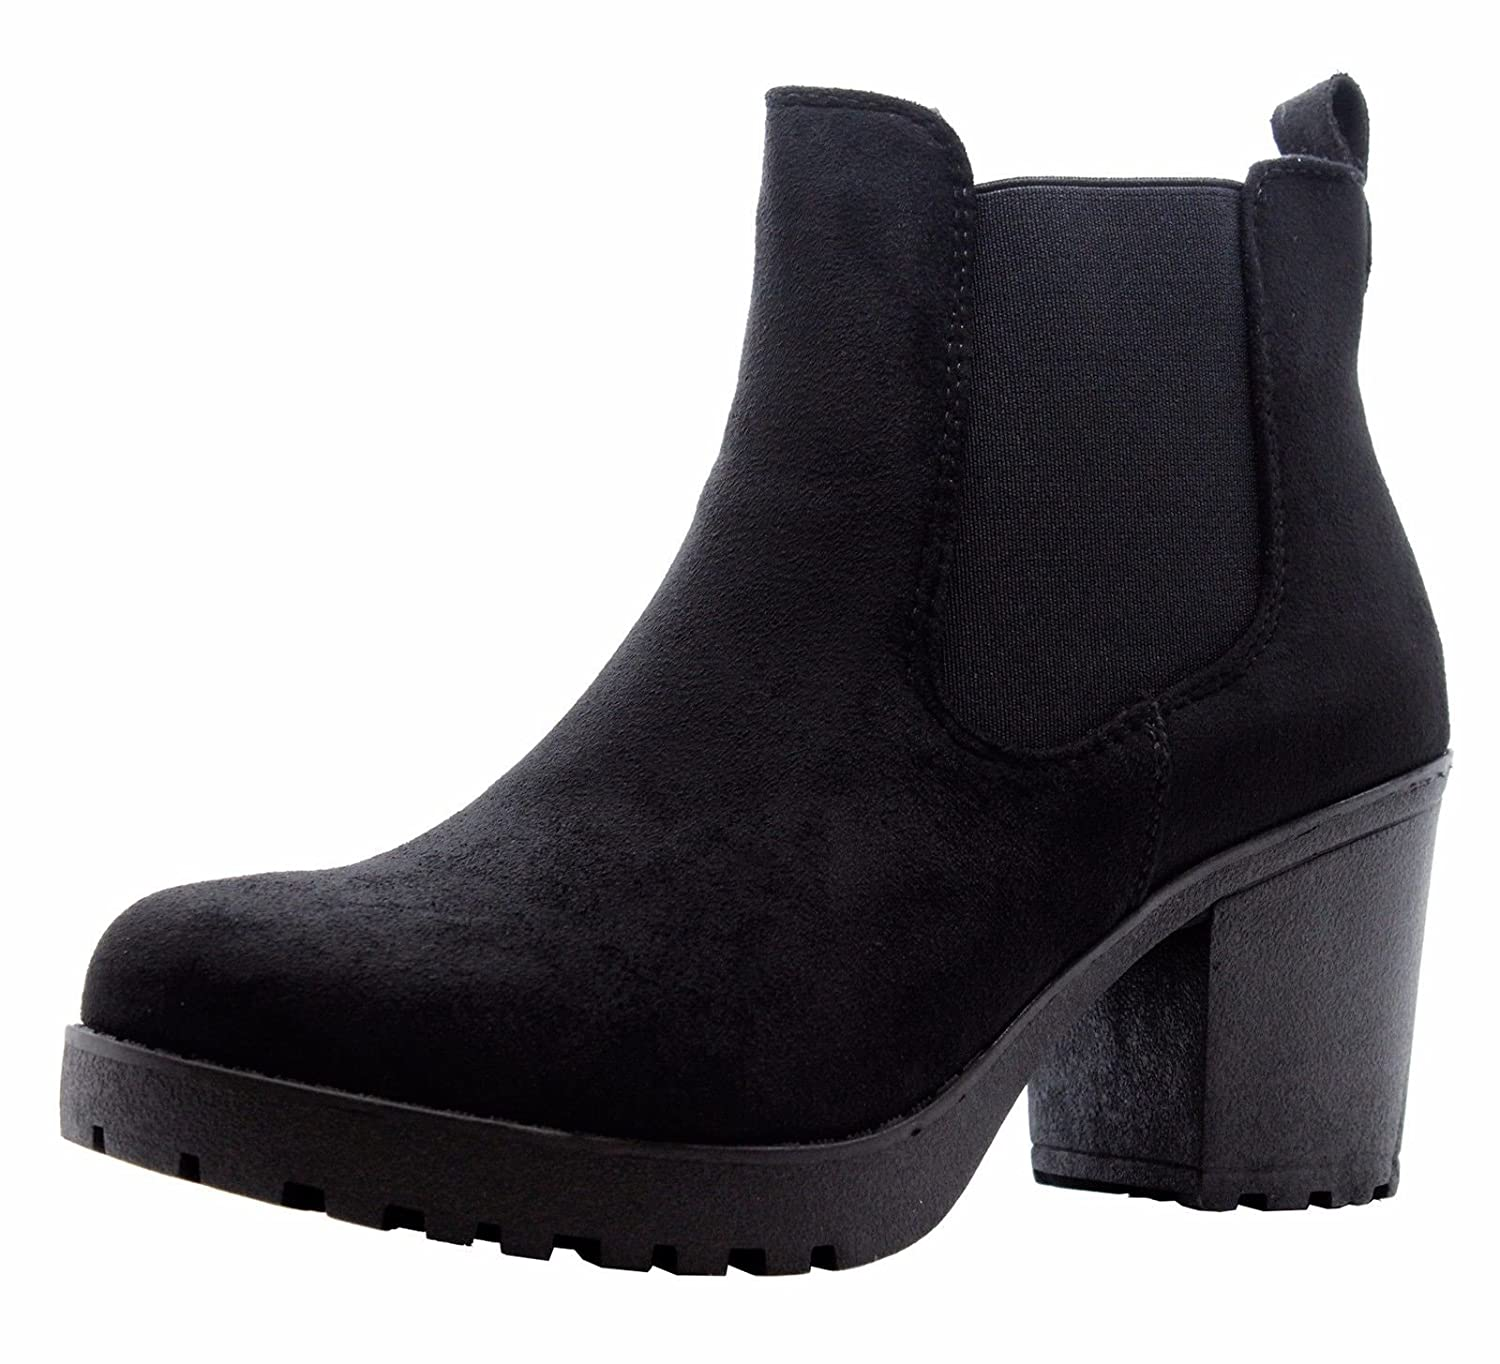 535c2972f31 Ladies Womens Block Chunky Heels Chelsea Ankle Boots Grip Sole Office Shoes  Size 3-8  Amazon.co.uk  Shoes   Bags